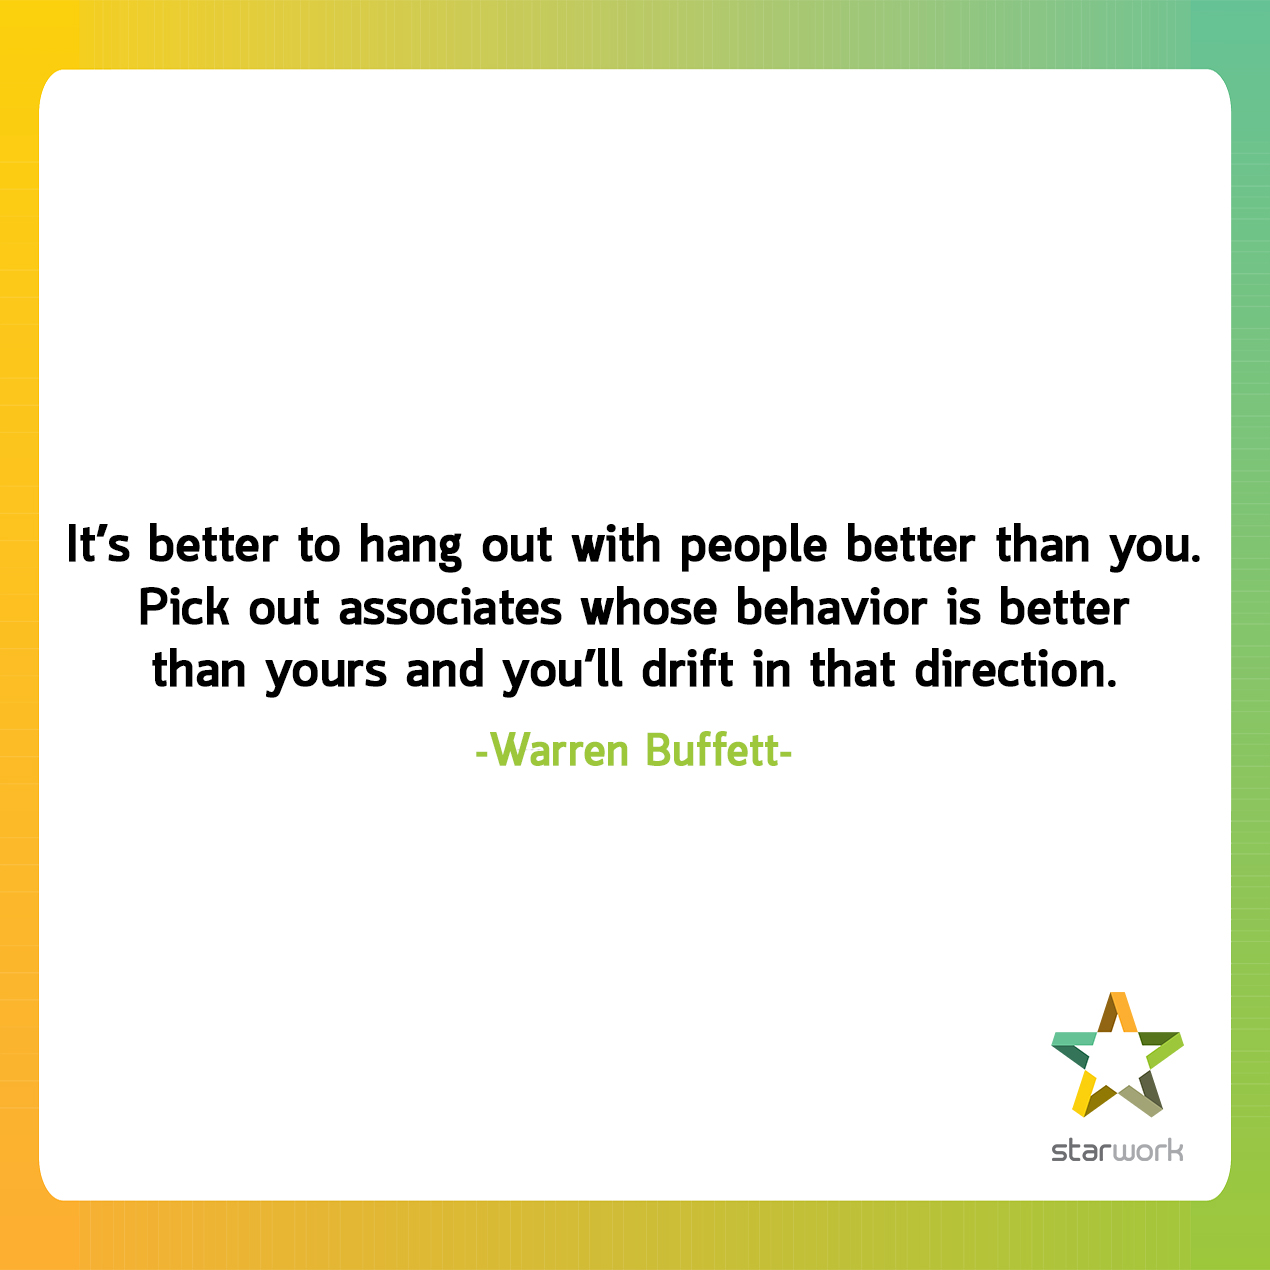 It's better to hang out with people better than you. Pick out associates whose behavior is better than yours and you'll drift in that direction.